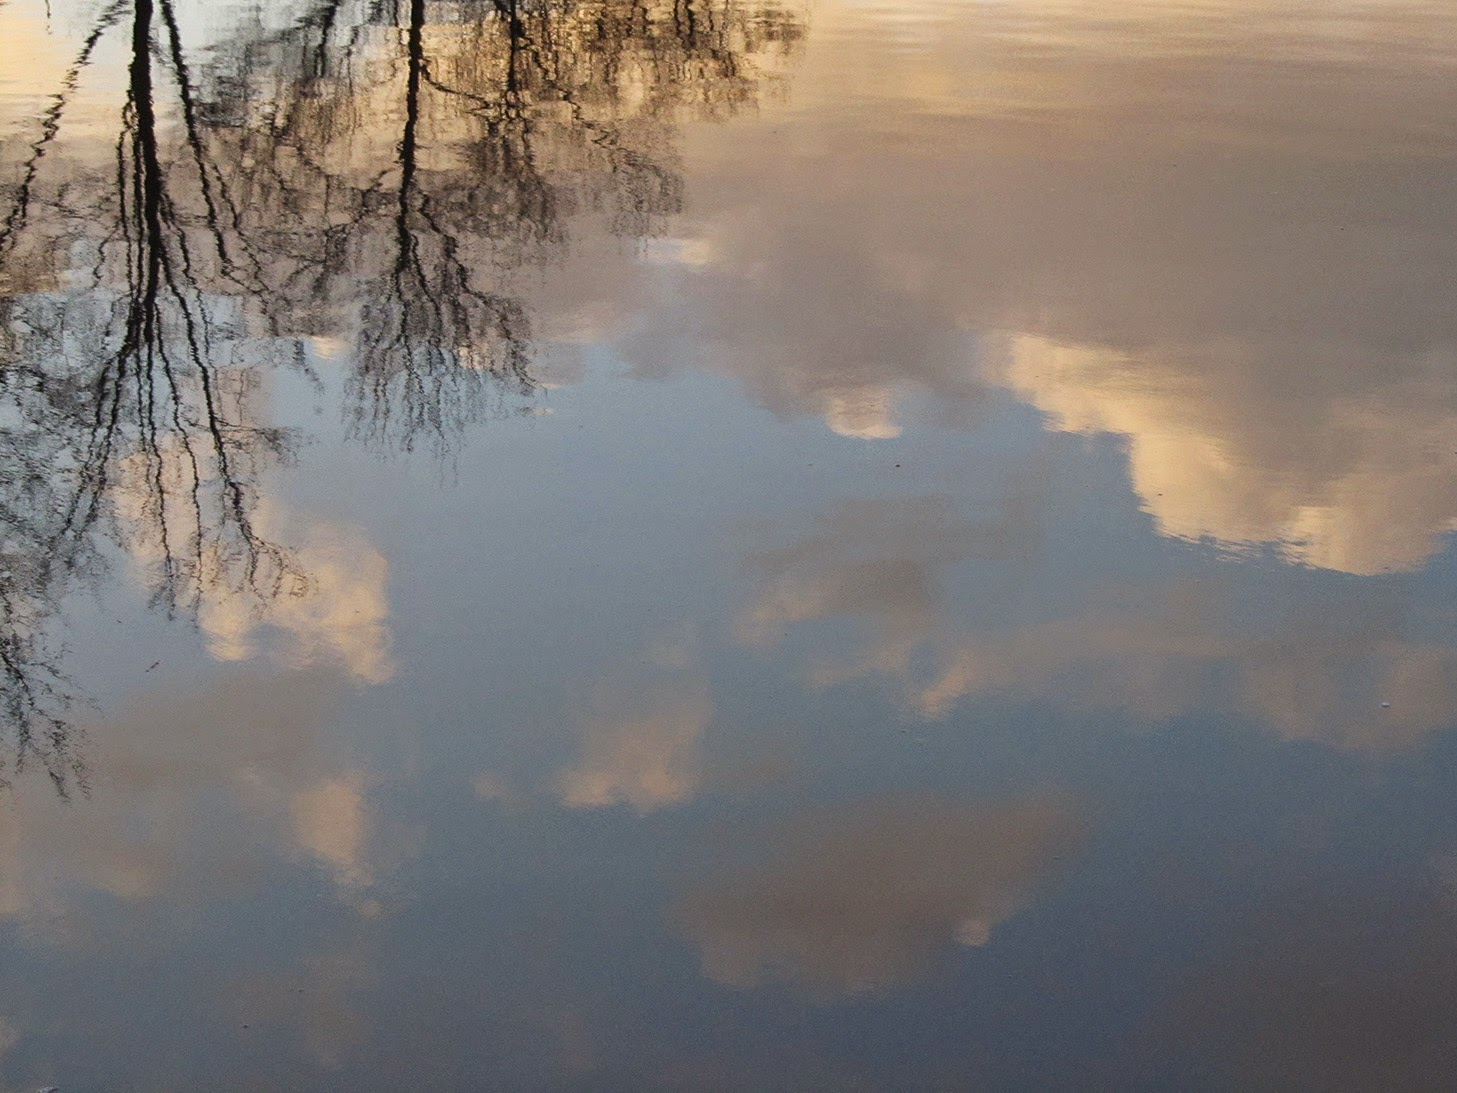 reflected clouds and trees in water